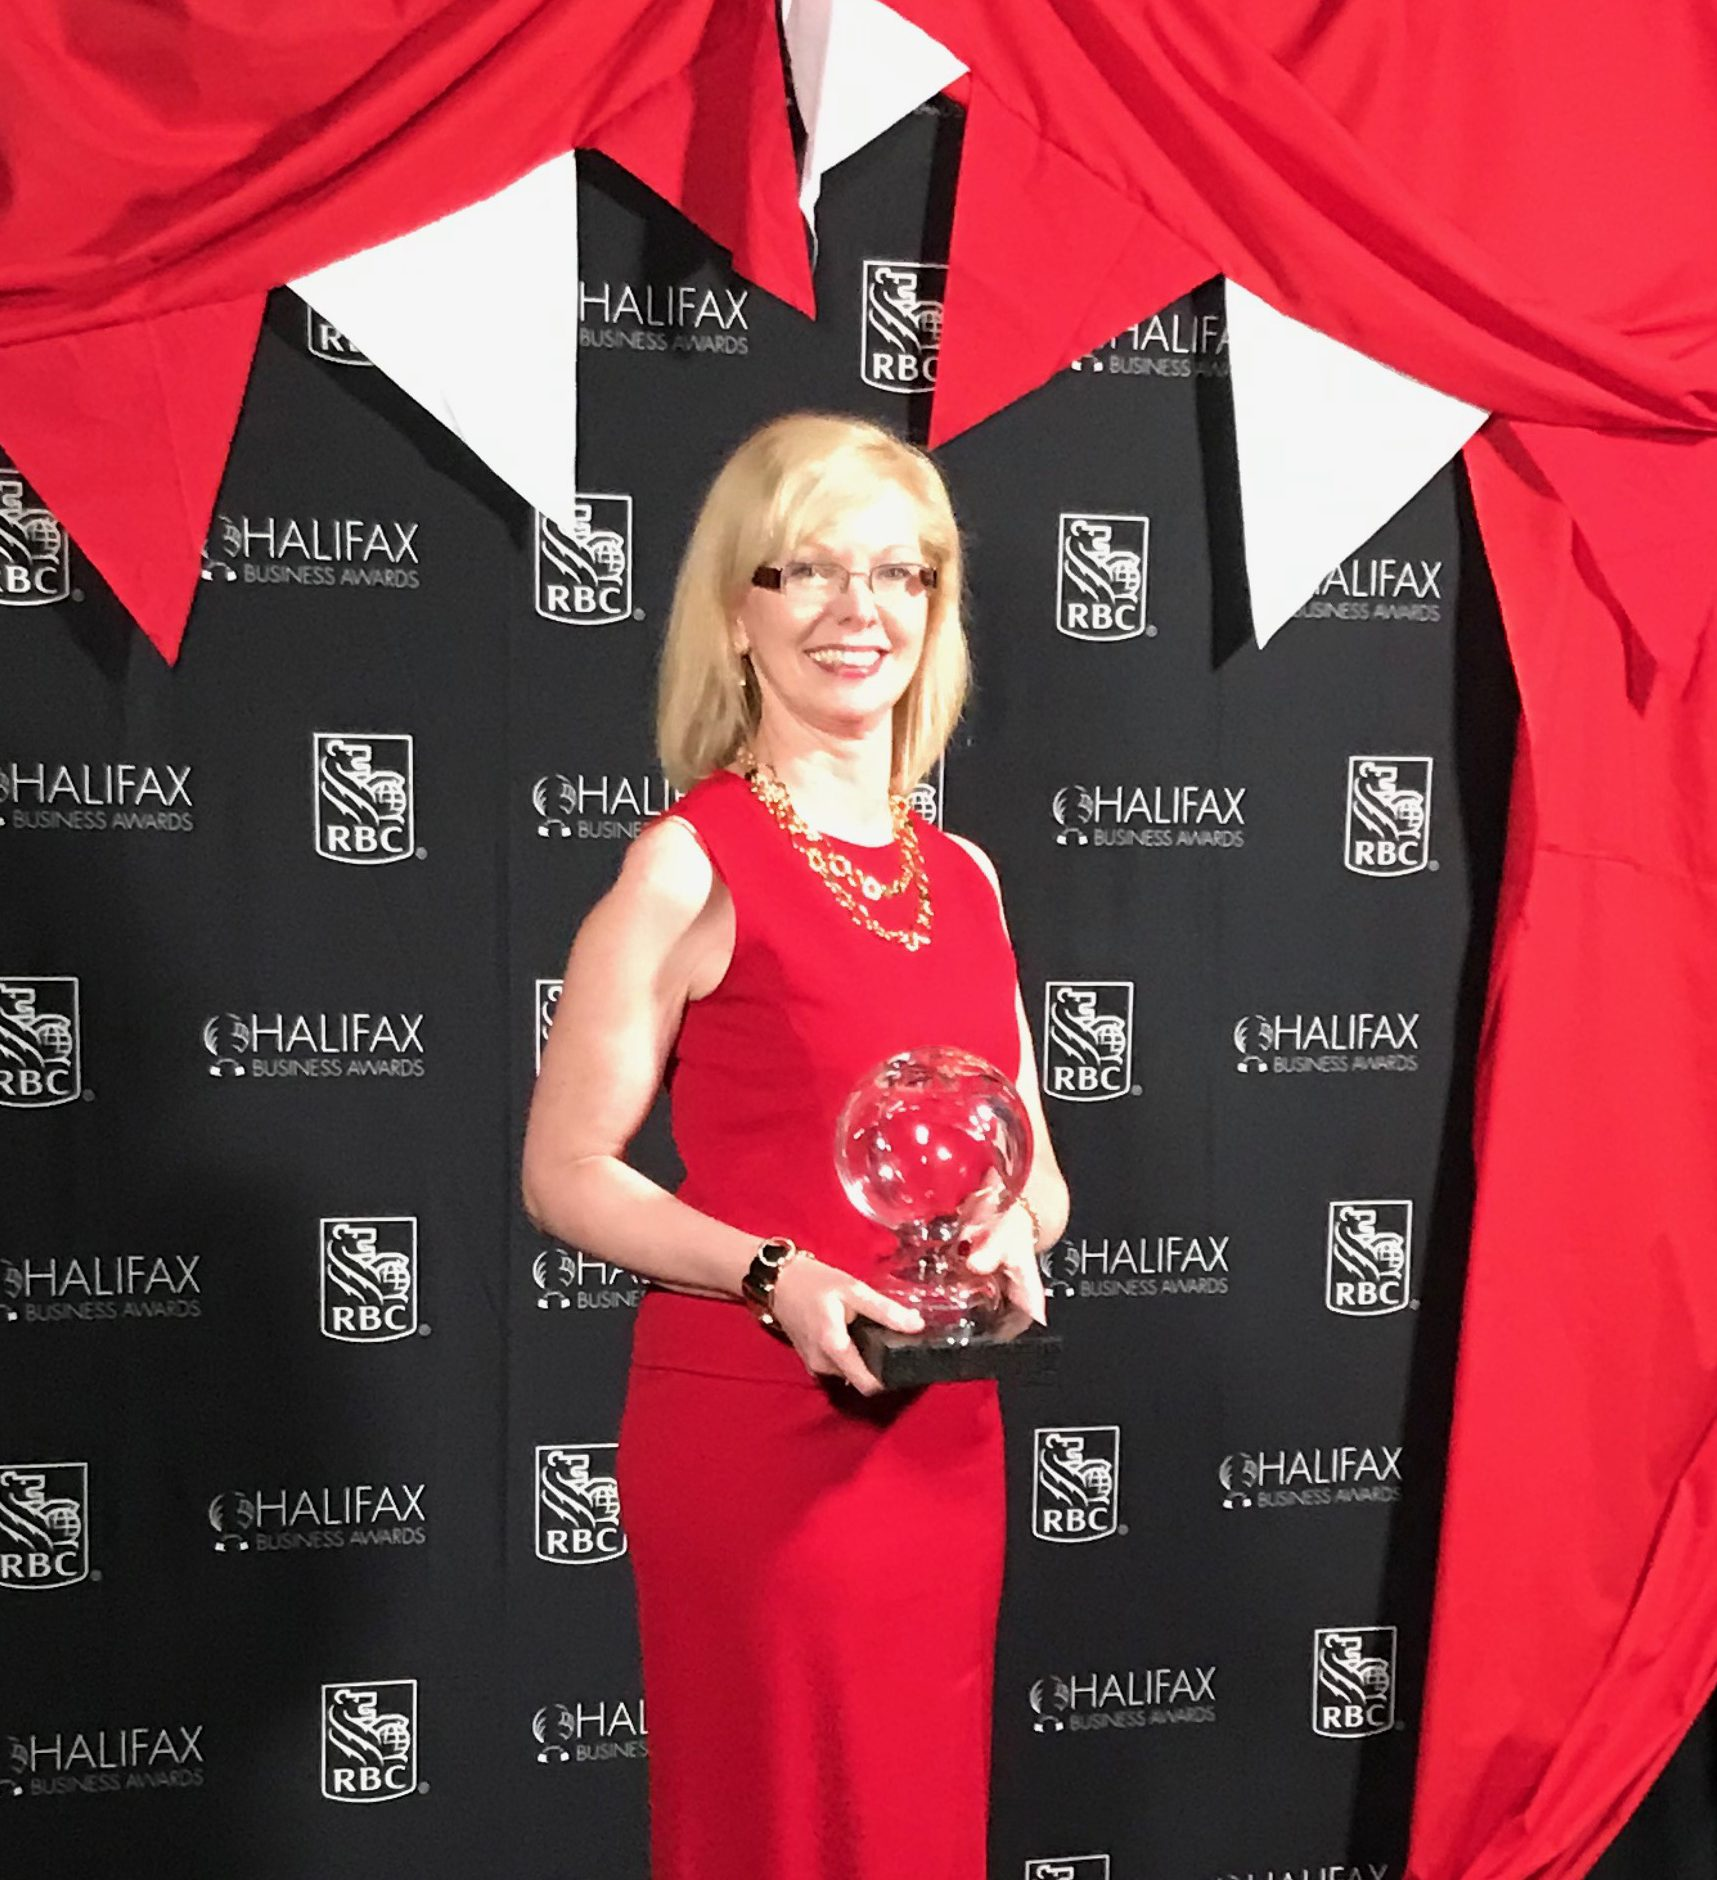 Airport CEO Wins Business Leader of the Year at the 2019 Halifax Business Awards